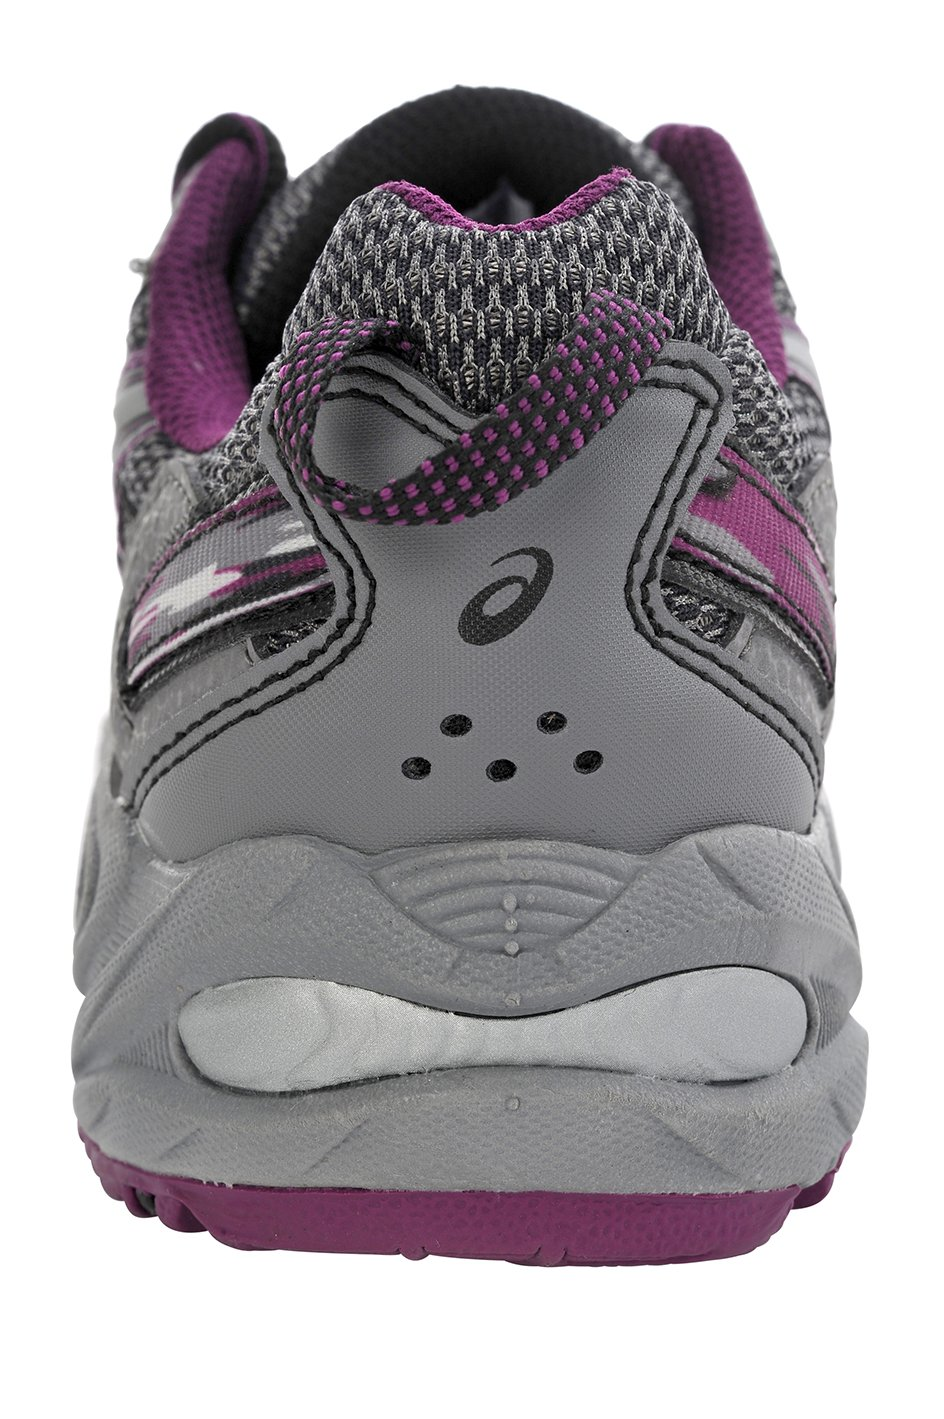 ASICS Women's Gel-Venture 5 Trail Running Shoe, Frost Gray/Gray/Silver/Magenta, 6 M US by ASICS (Image #3)